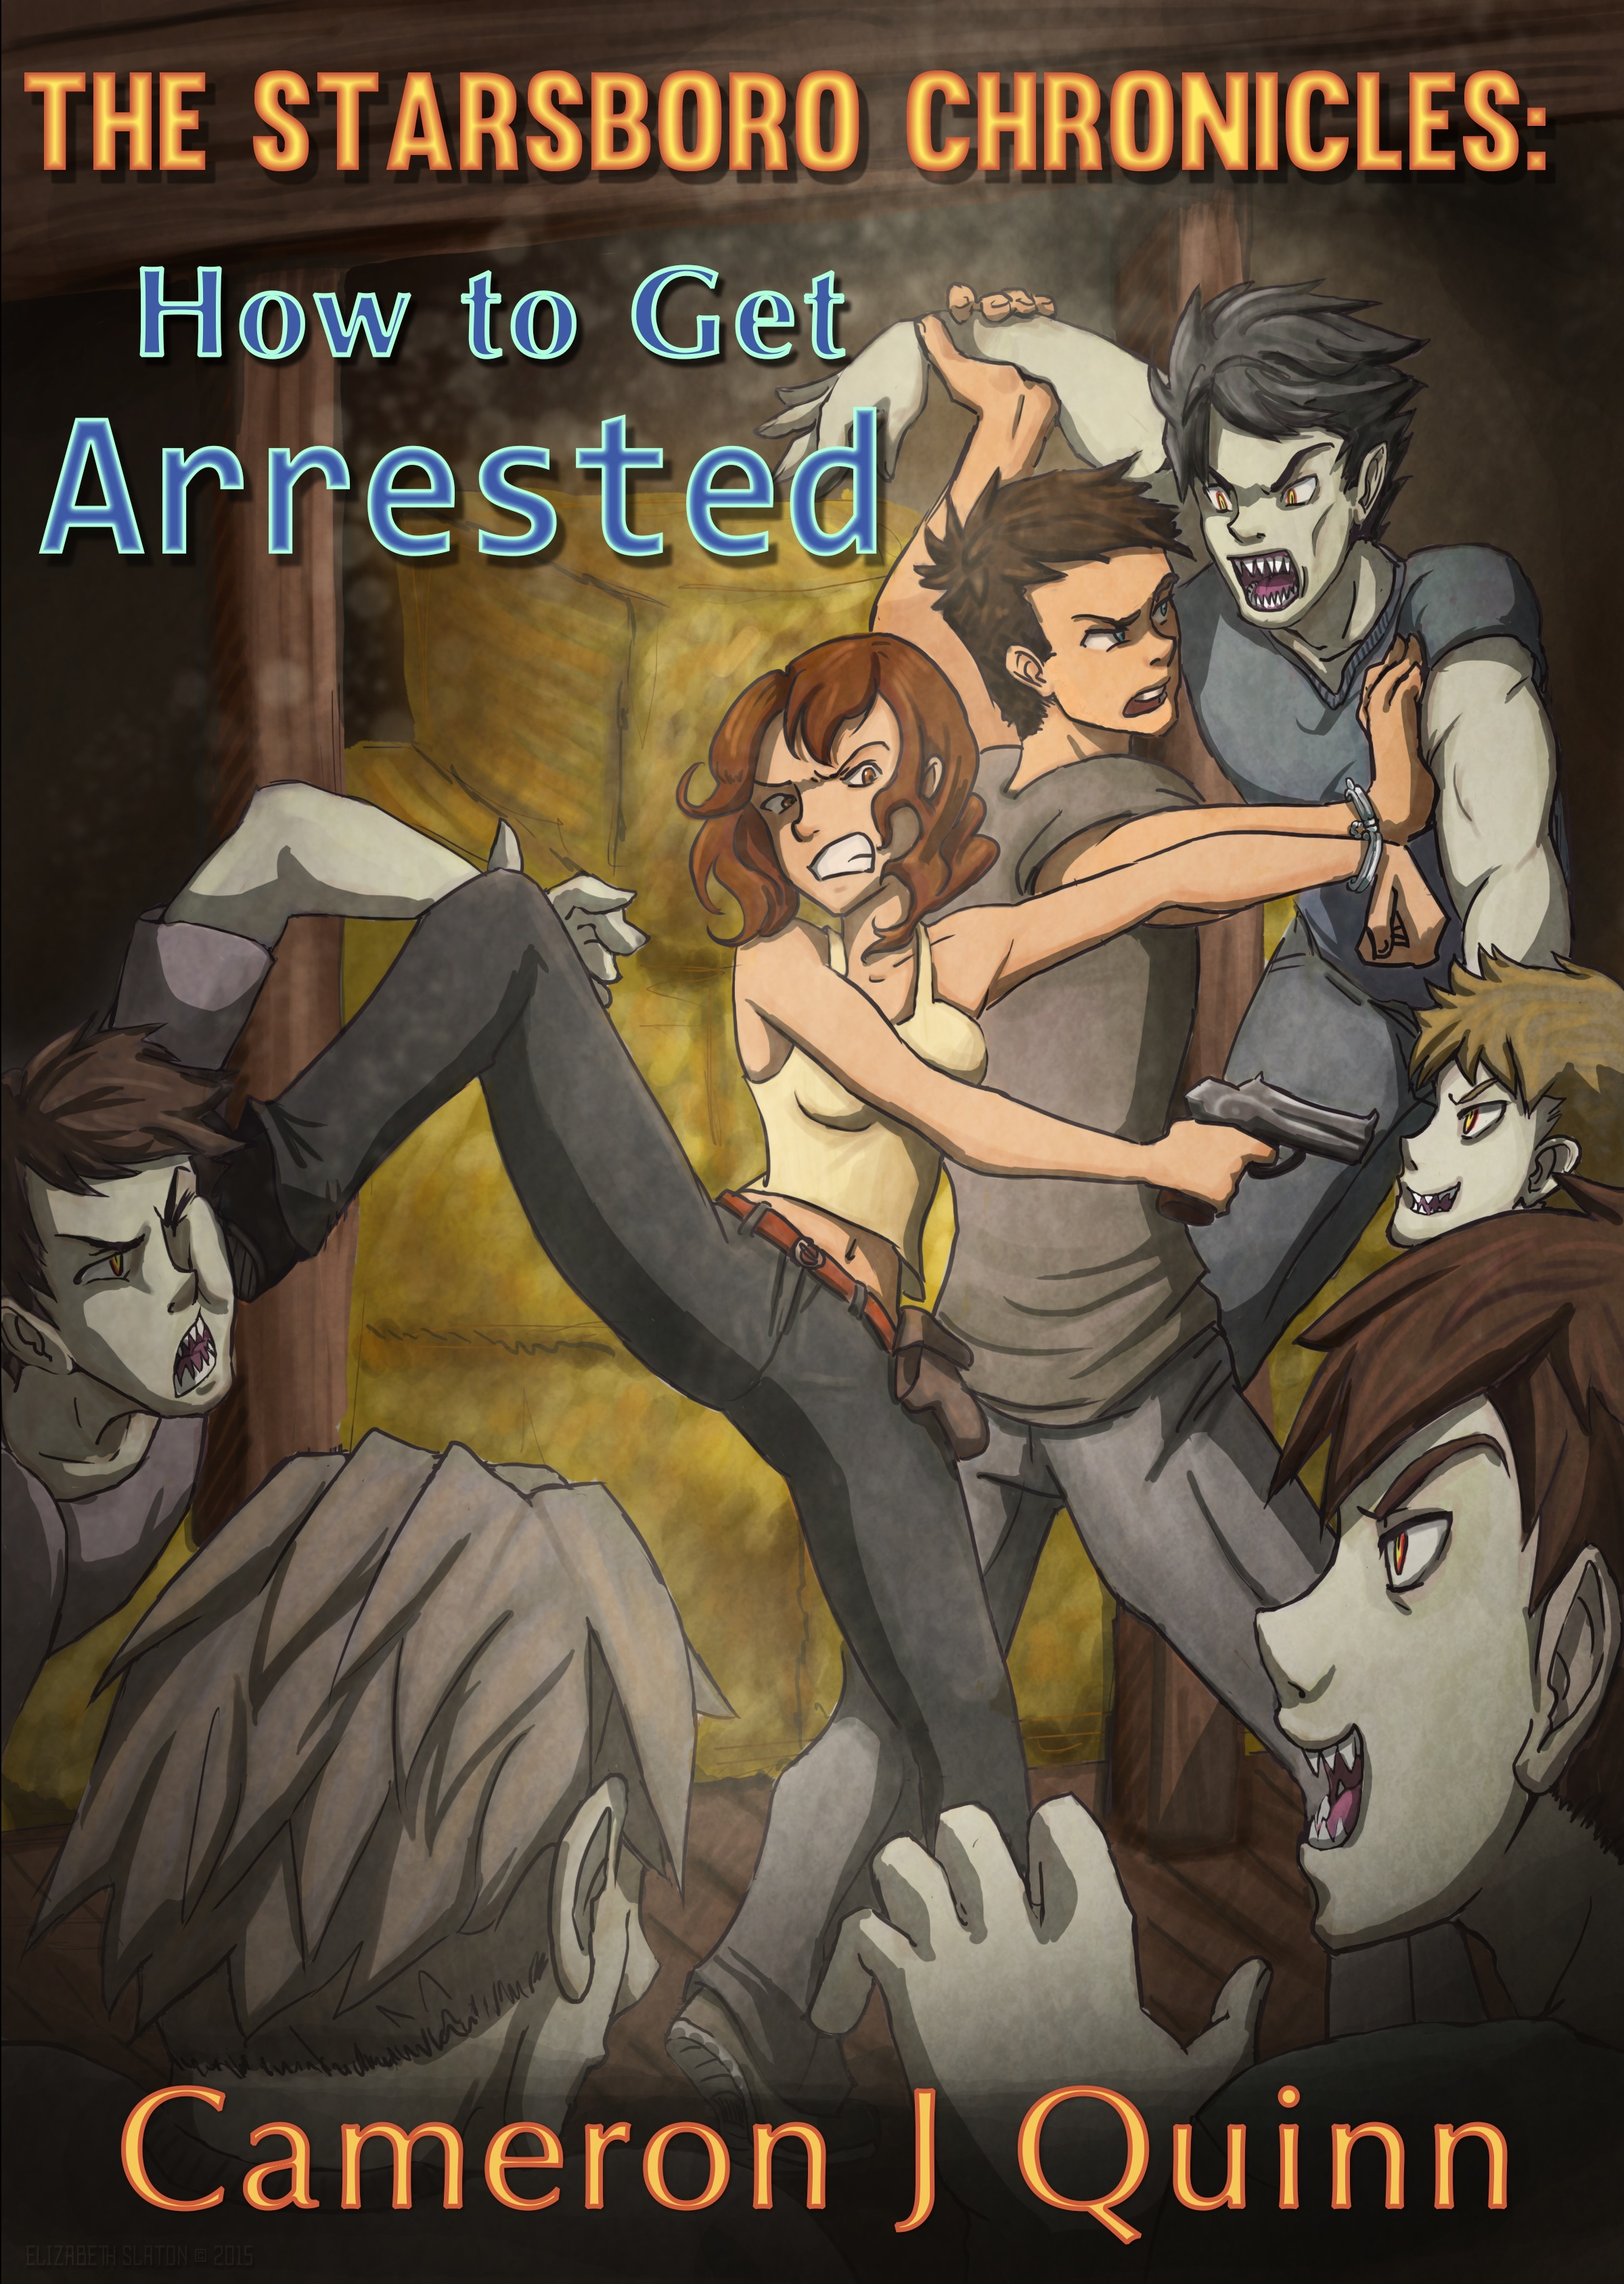 The Starsboro Chronicles Episode 1: How to Get Arrested Cameron J Quinn